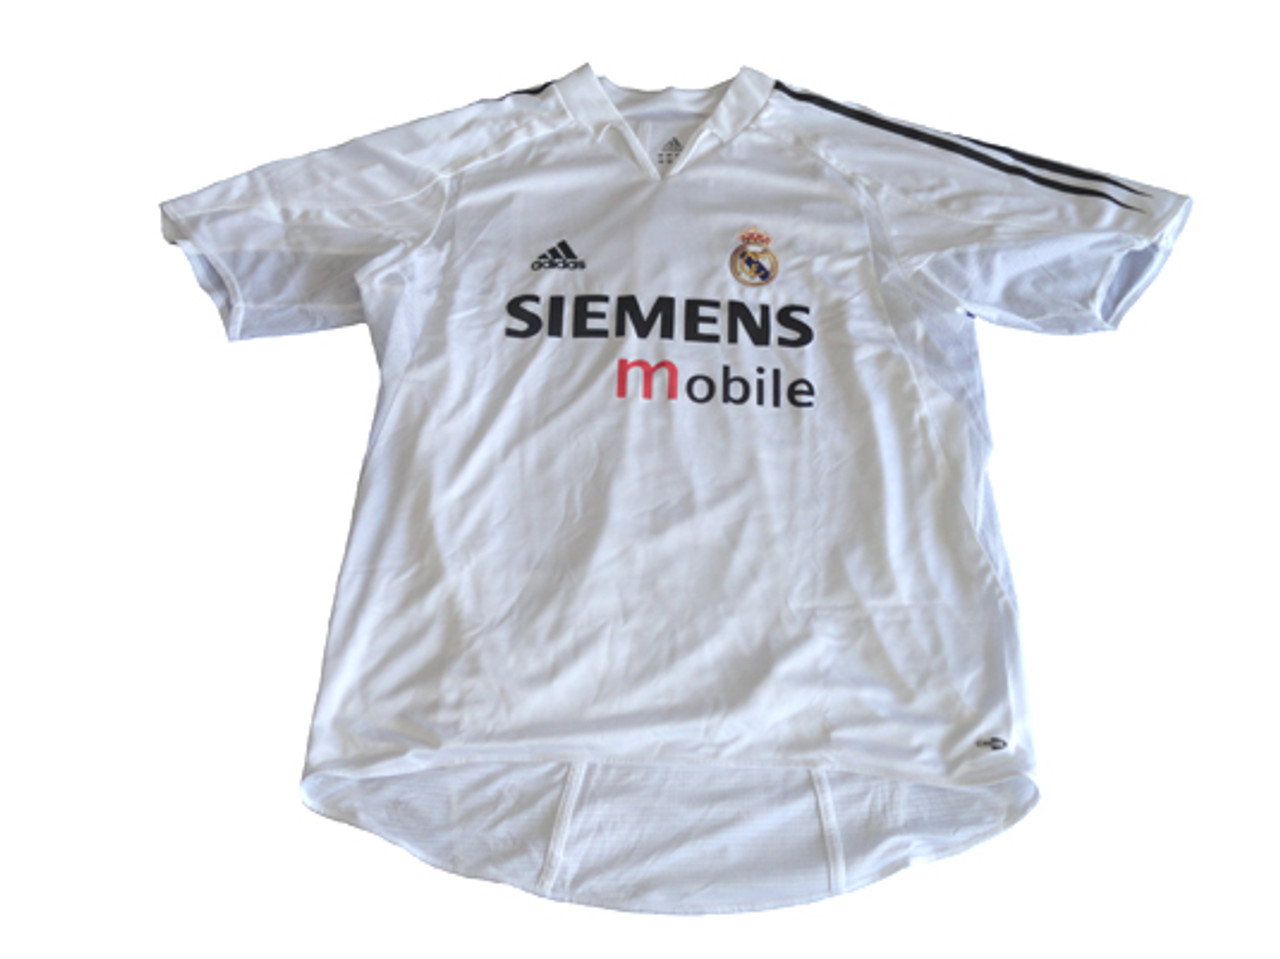 on sale 44244 927f5 ADIDAS REAL MADRID 2005 AUTHENTIC HOME JERSEY